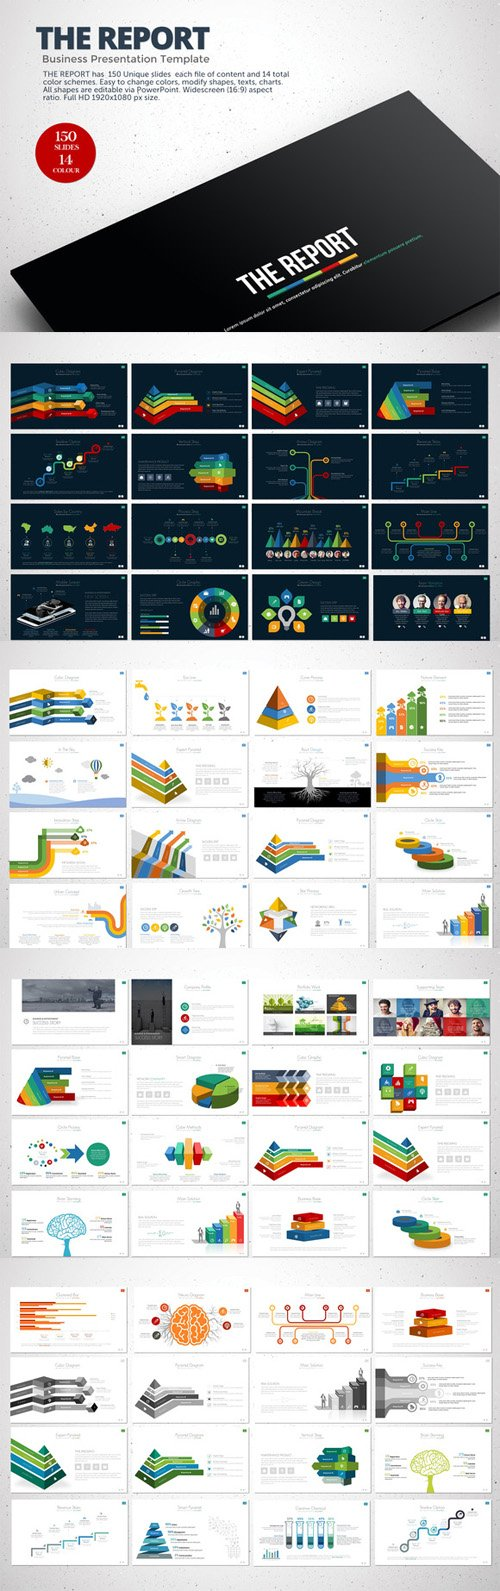 Creativemarket - The Report Powerpoint Template 128888